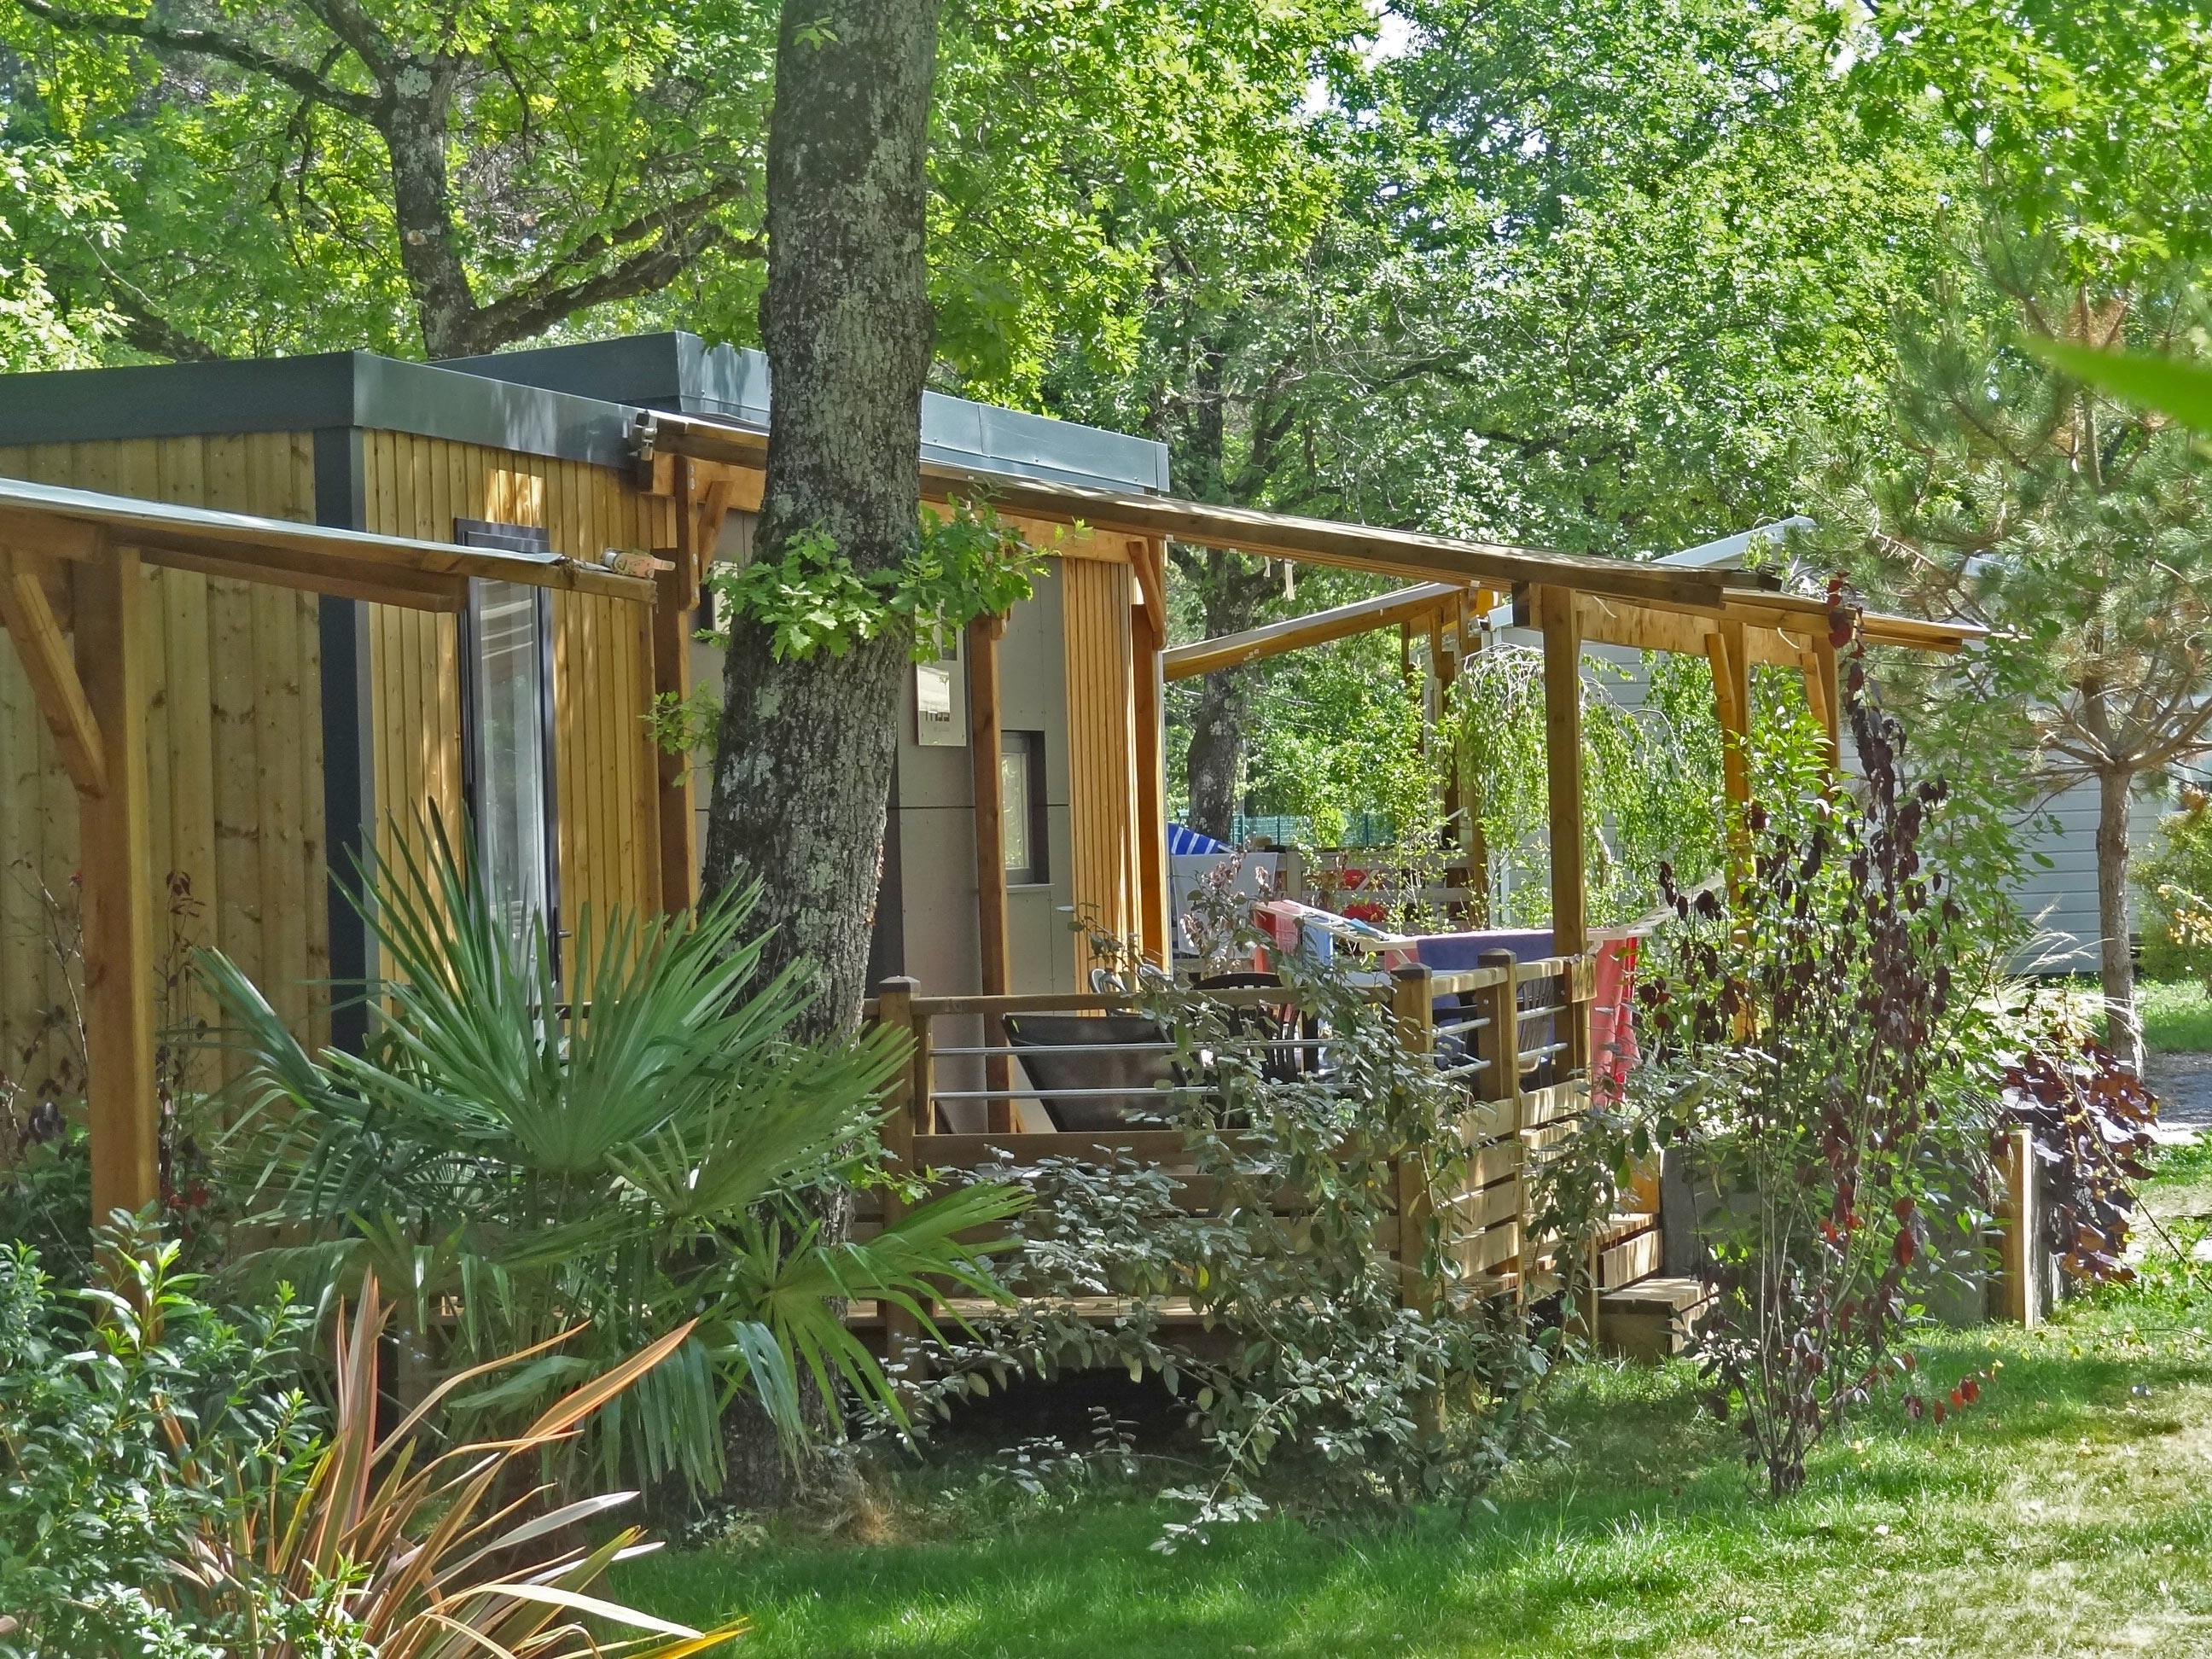 Location - Mobilhome Taos V.I.P 3Ch 38M² - Terrasse Couverte 27M² (3 Chambres) - Camping Saint-Disdille